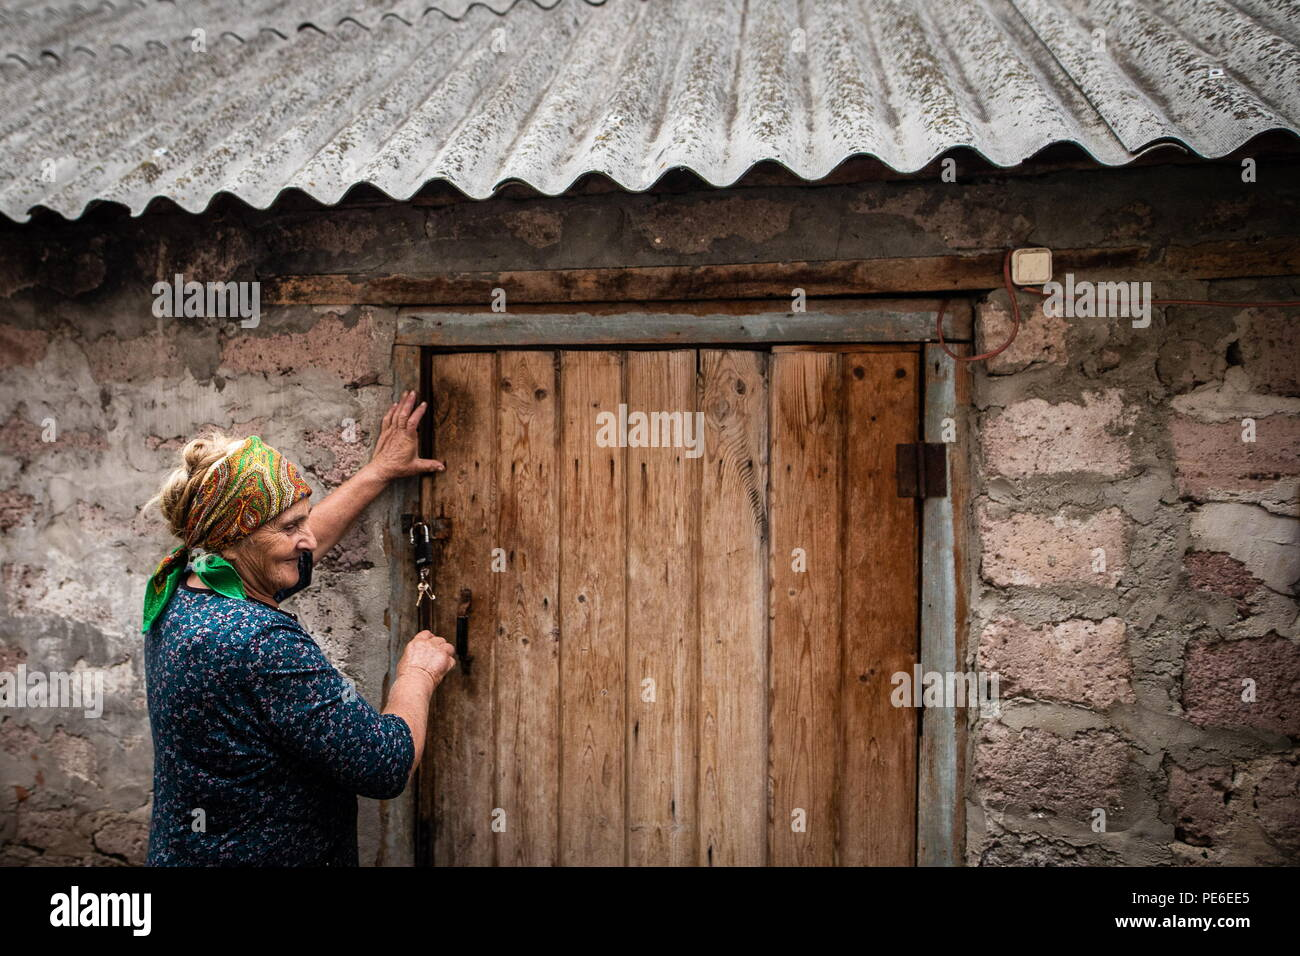 South Ossetia. 11th Aug, 2018. SOUTH OSSETIA - AUGUST 11, 2018: Margarita Madzigova, 63, outside her house in the village of Khetagurovo, Tskhinvali District, South Ossetia; Margarita and her husband Alikhan have been running a farm since their house was restored after the 2008 South Ossetian-Georgian military conflict. Sergei Bobylev/TASS Credit: ITAR-TASS News Agency/Alamy Live News - Stock Image